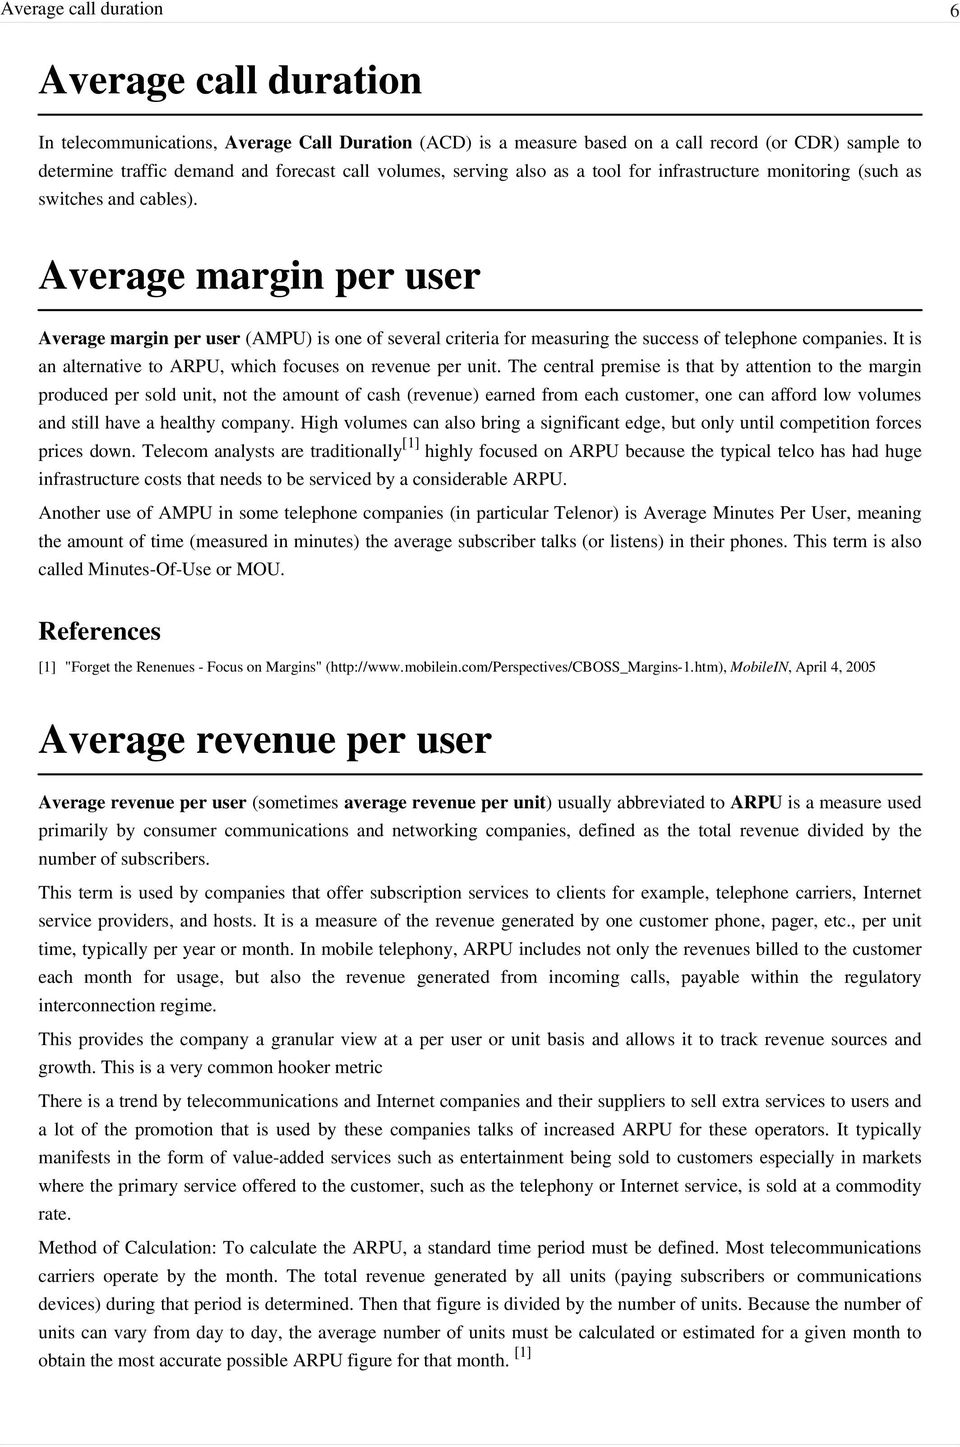 Average margin per user Average margin per user (AMPU) is one of several criteria for measuring the success of telephone companies. It is an alternative to ARPU, which focuses on revenue per unit.